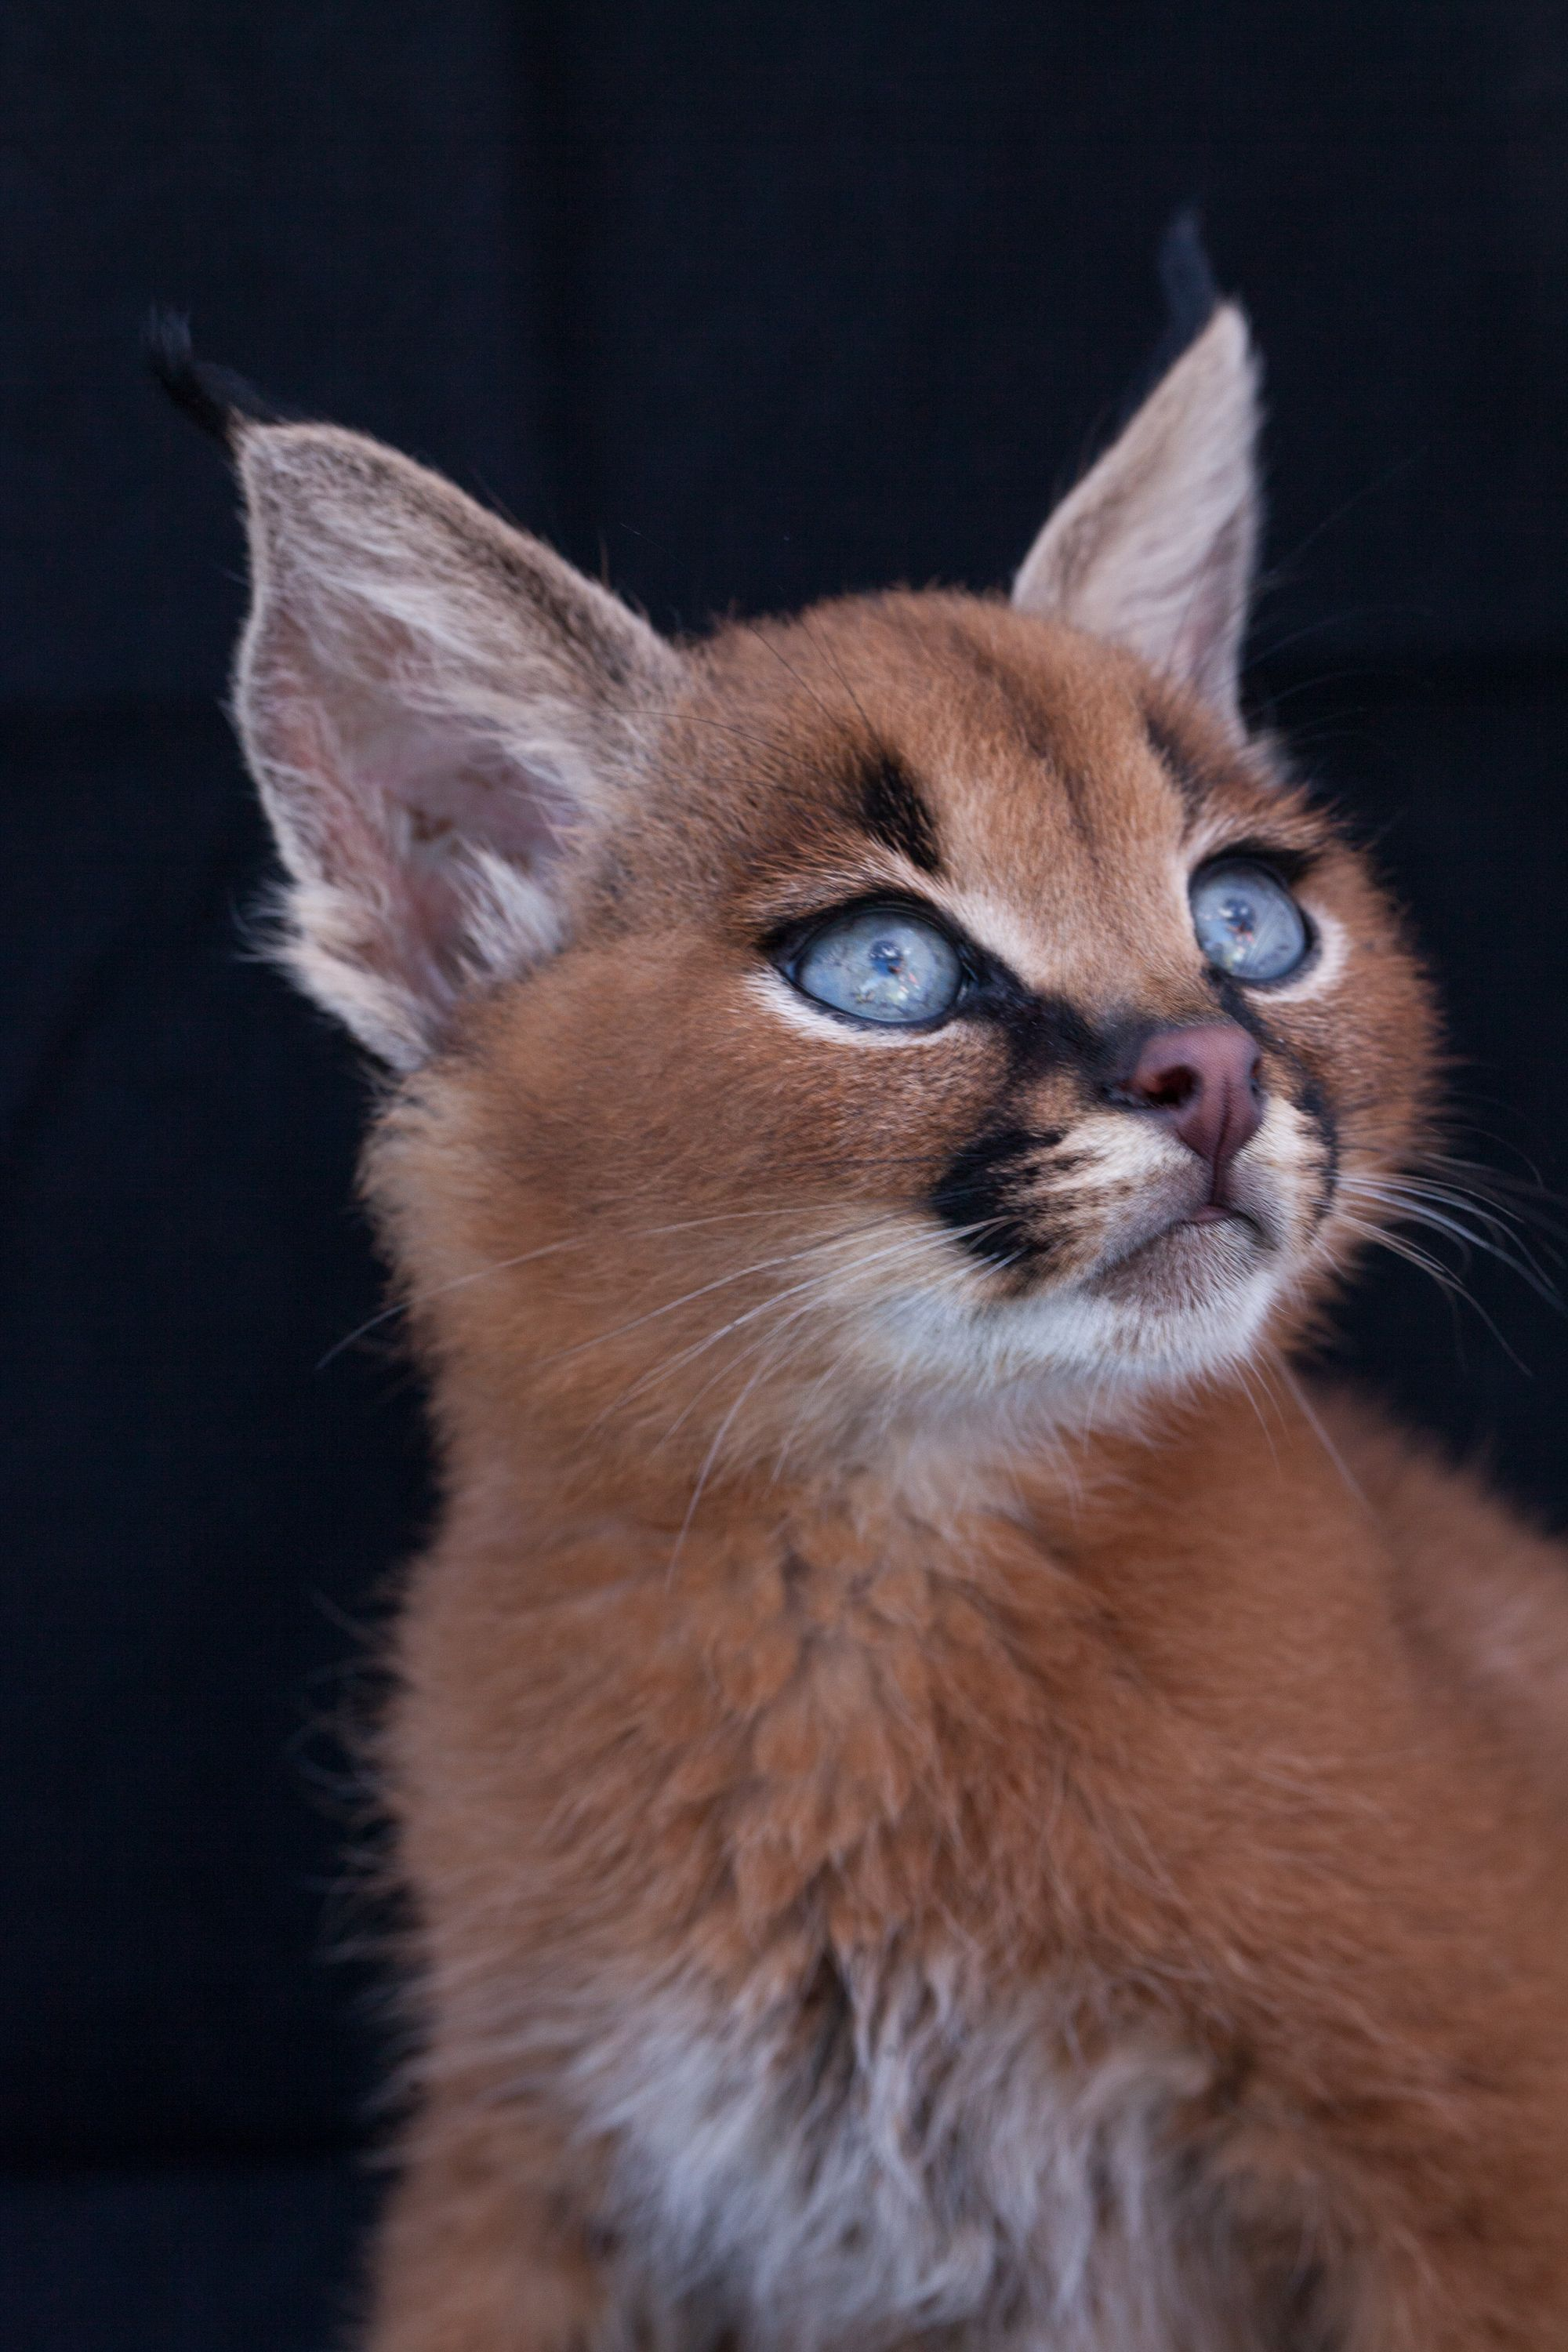 caracal kittens originated from Africa baby kittens have folded